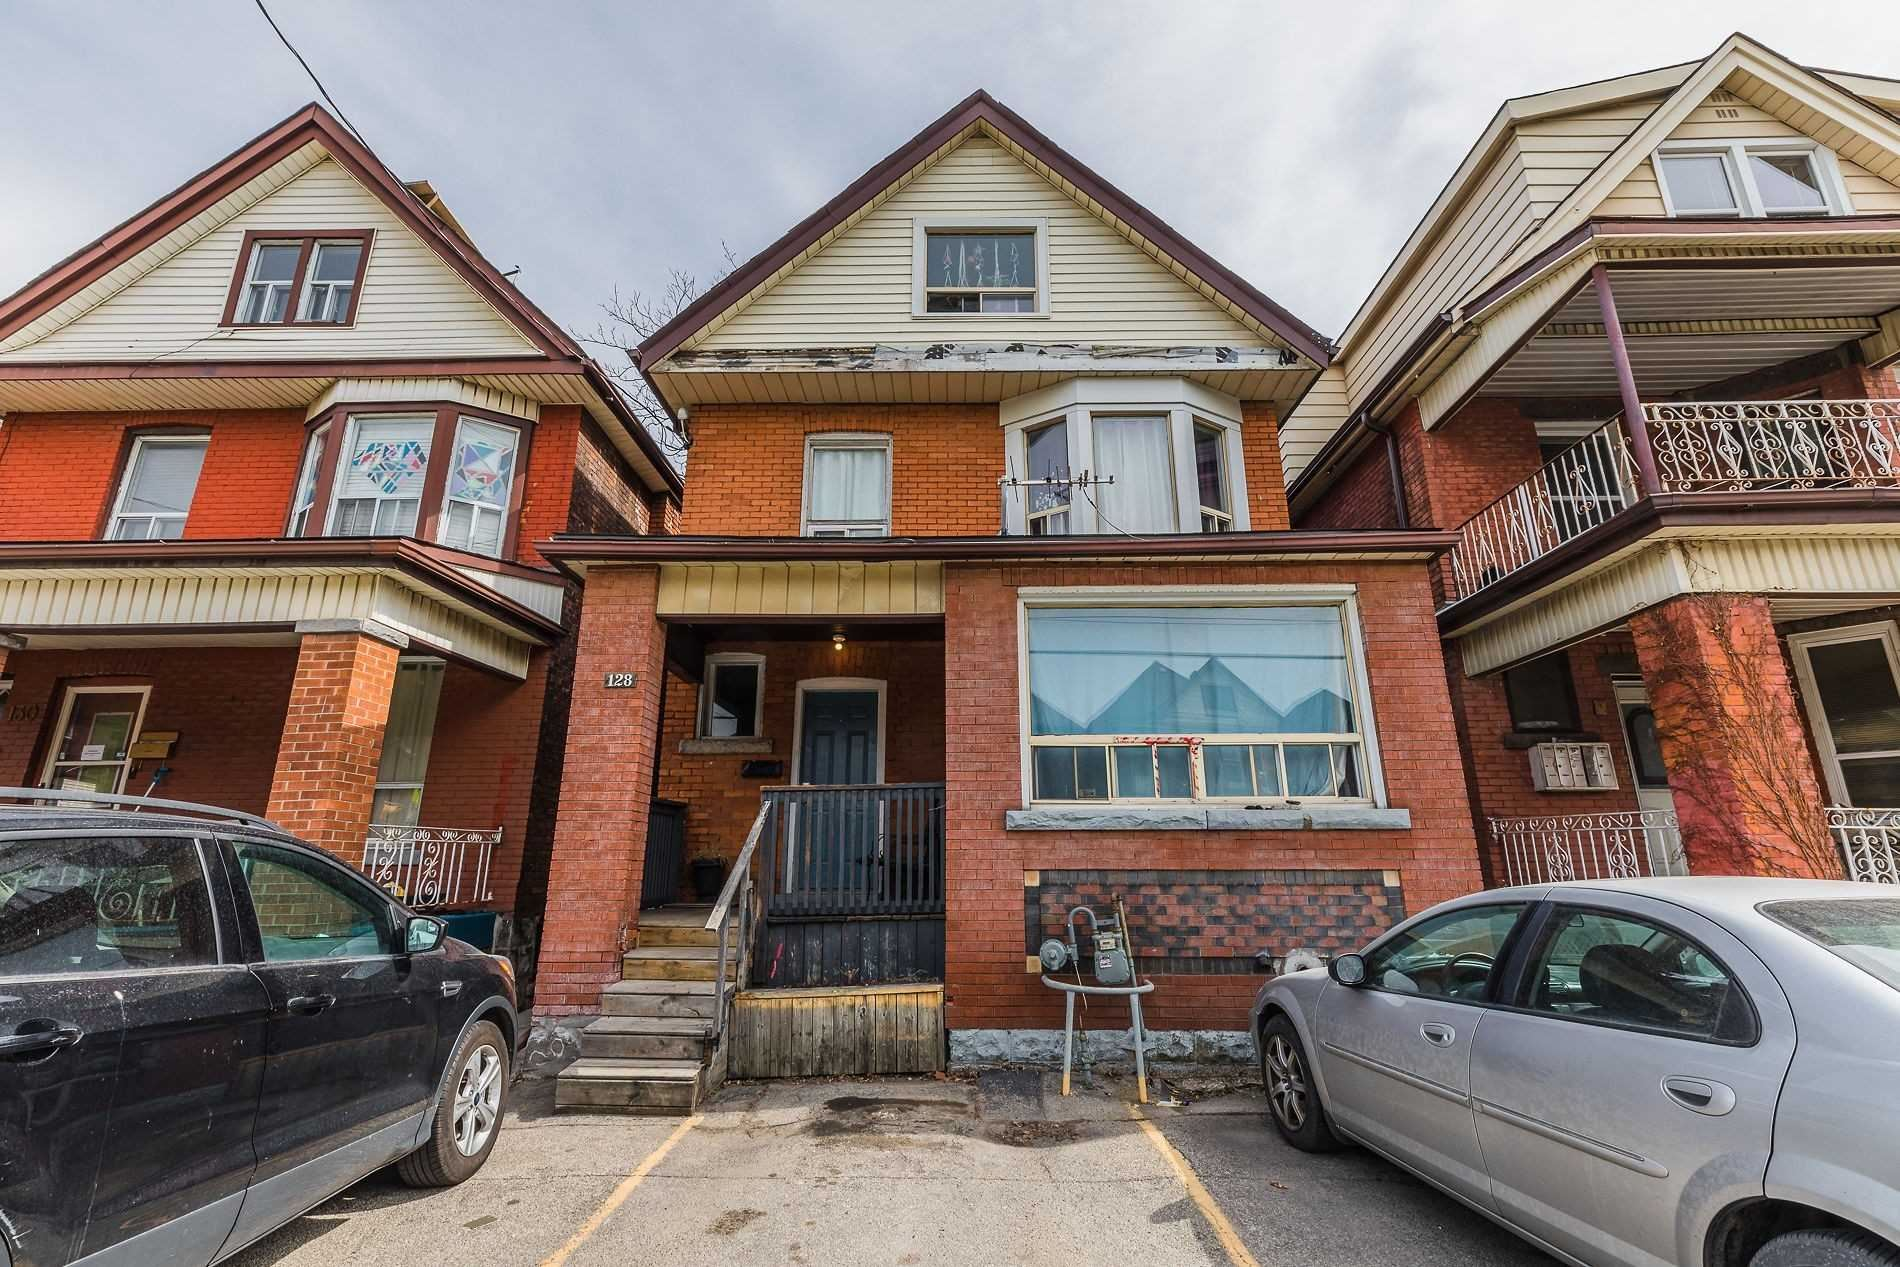 128 Wentworth St N, Hamilton, ON L8L 5V7 - MLS#: X5165337